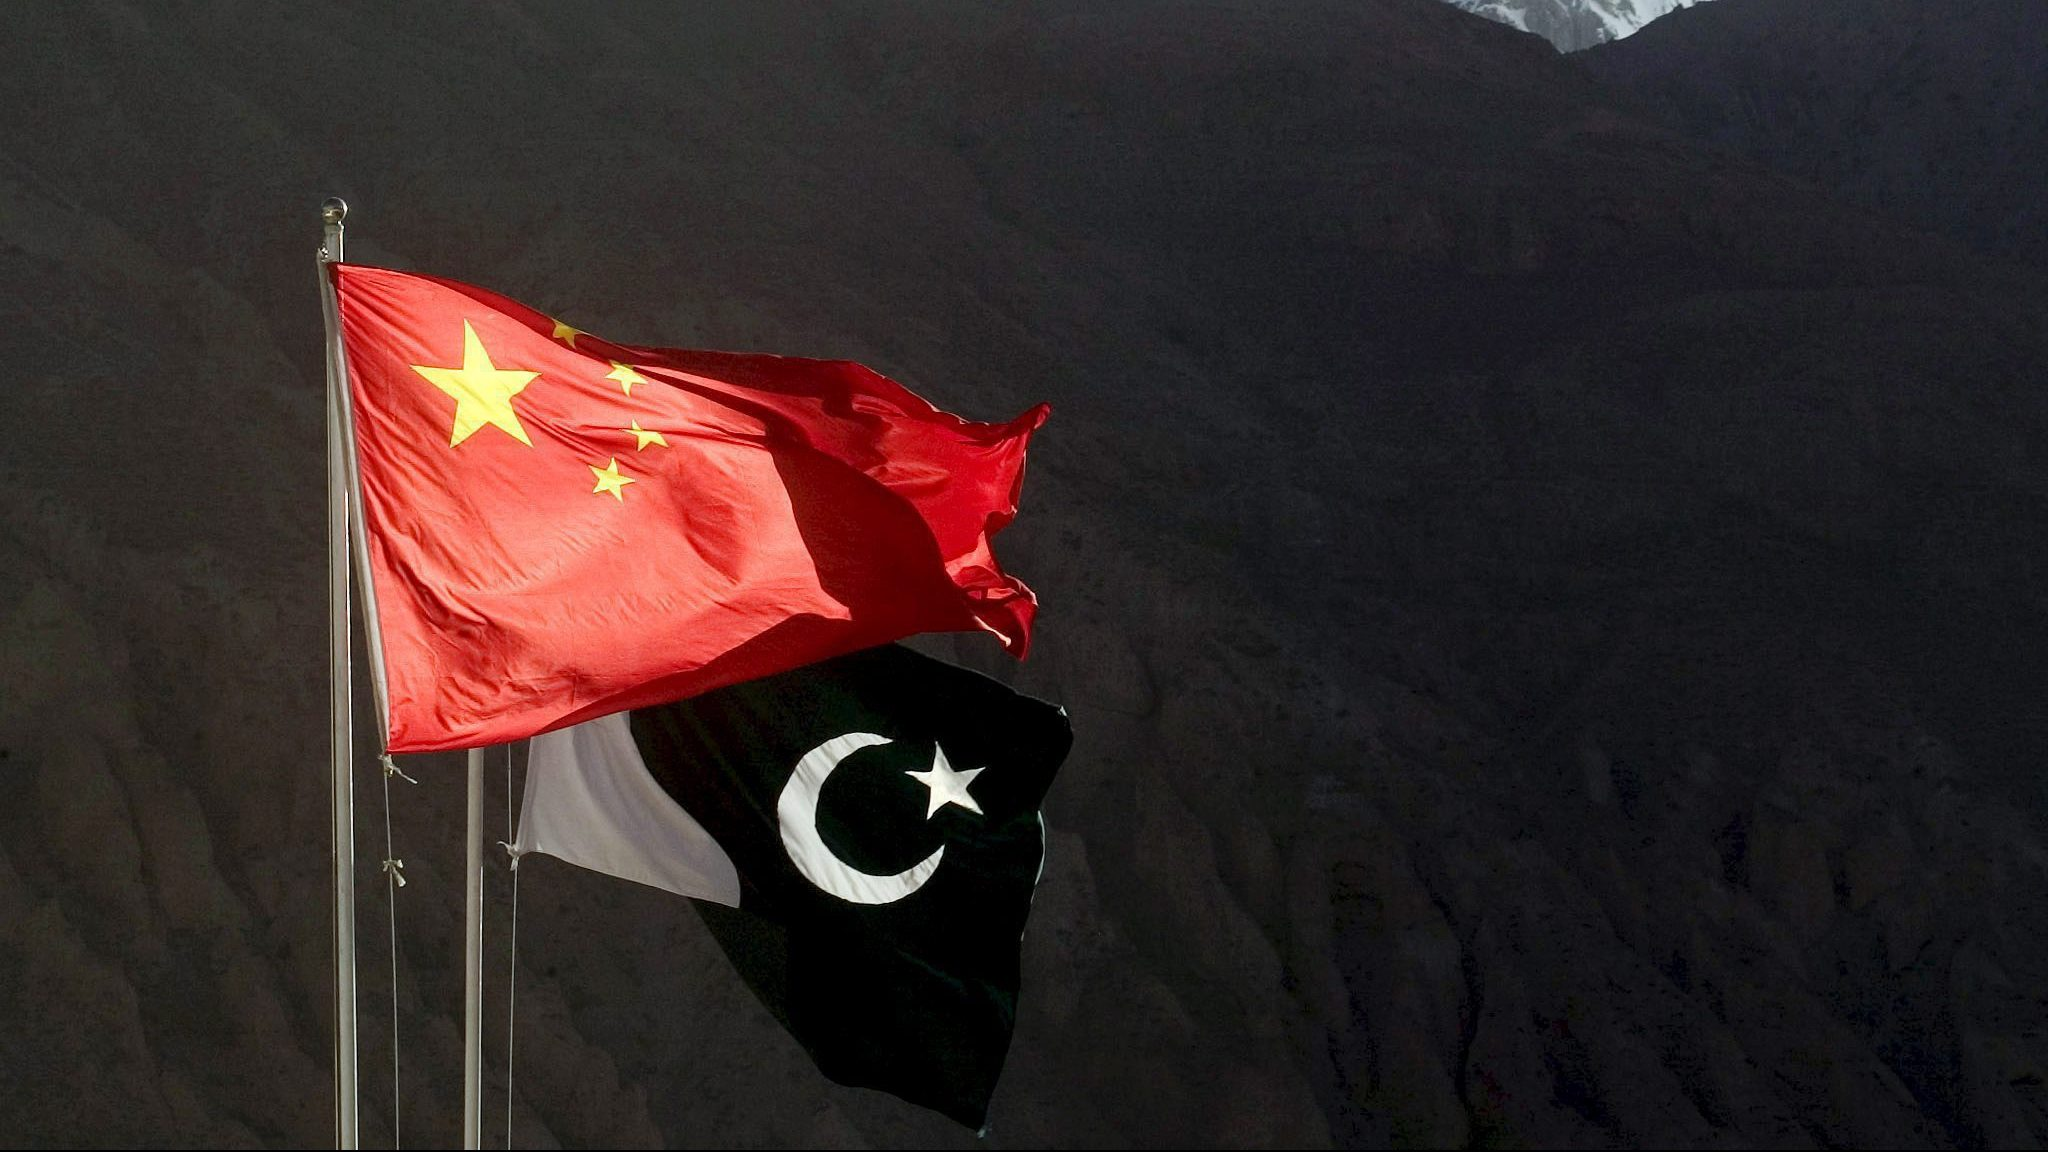 Pakistani (R) and Chinese flags wave at 4,730 meters (15,520 ft) high Khunjerab Pass, a high pass on the northern border of Pakistan with China, Saturday, 11 June 2005. This section of the road was completed in 1982 and is considered to be the highest metal border crossing in the world. The pass is often snow covered and during the rainy season (December-April), because of mudslides the pass is closed to all vehicles except large trucks.  Pakistan and China?s formal relations were founded on 1951. Since then, relations between the two countries in almost all domains of life have not suffered any setback. Pakistan?s imports from China have been increasing since early 1980s and this is certainly beneficial for the country, as Pakistan has to pay less for imports from China as compared to the imports from the developed countries for the same type of commodities/machinery.